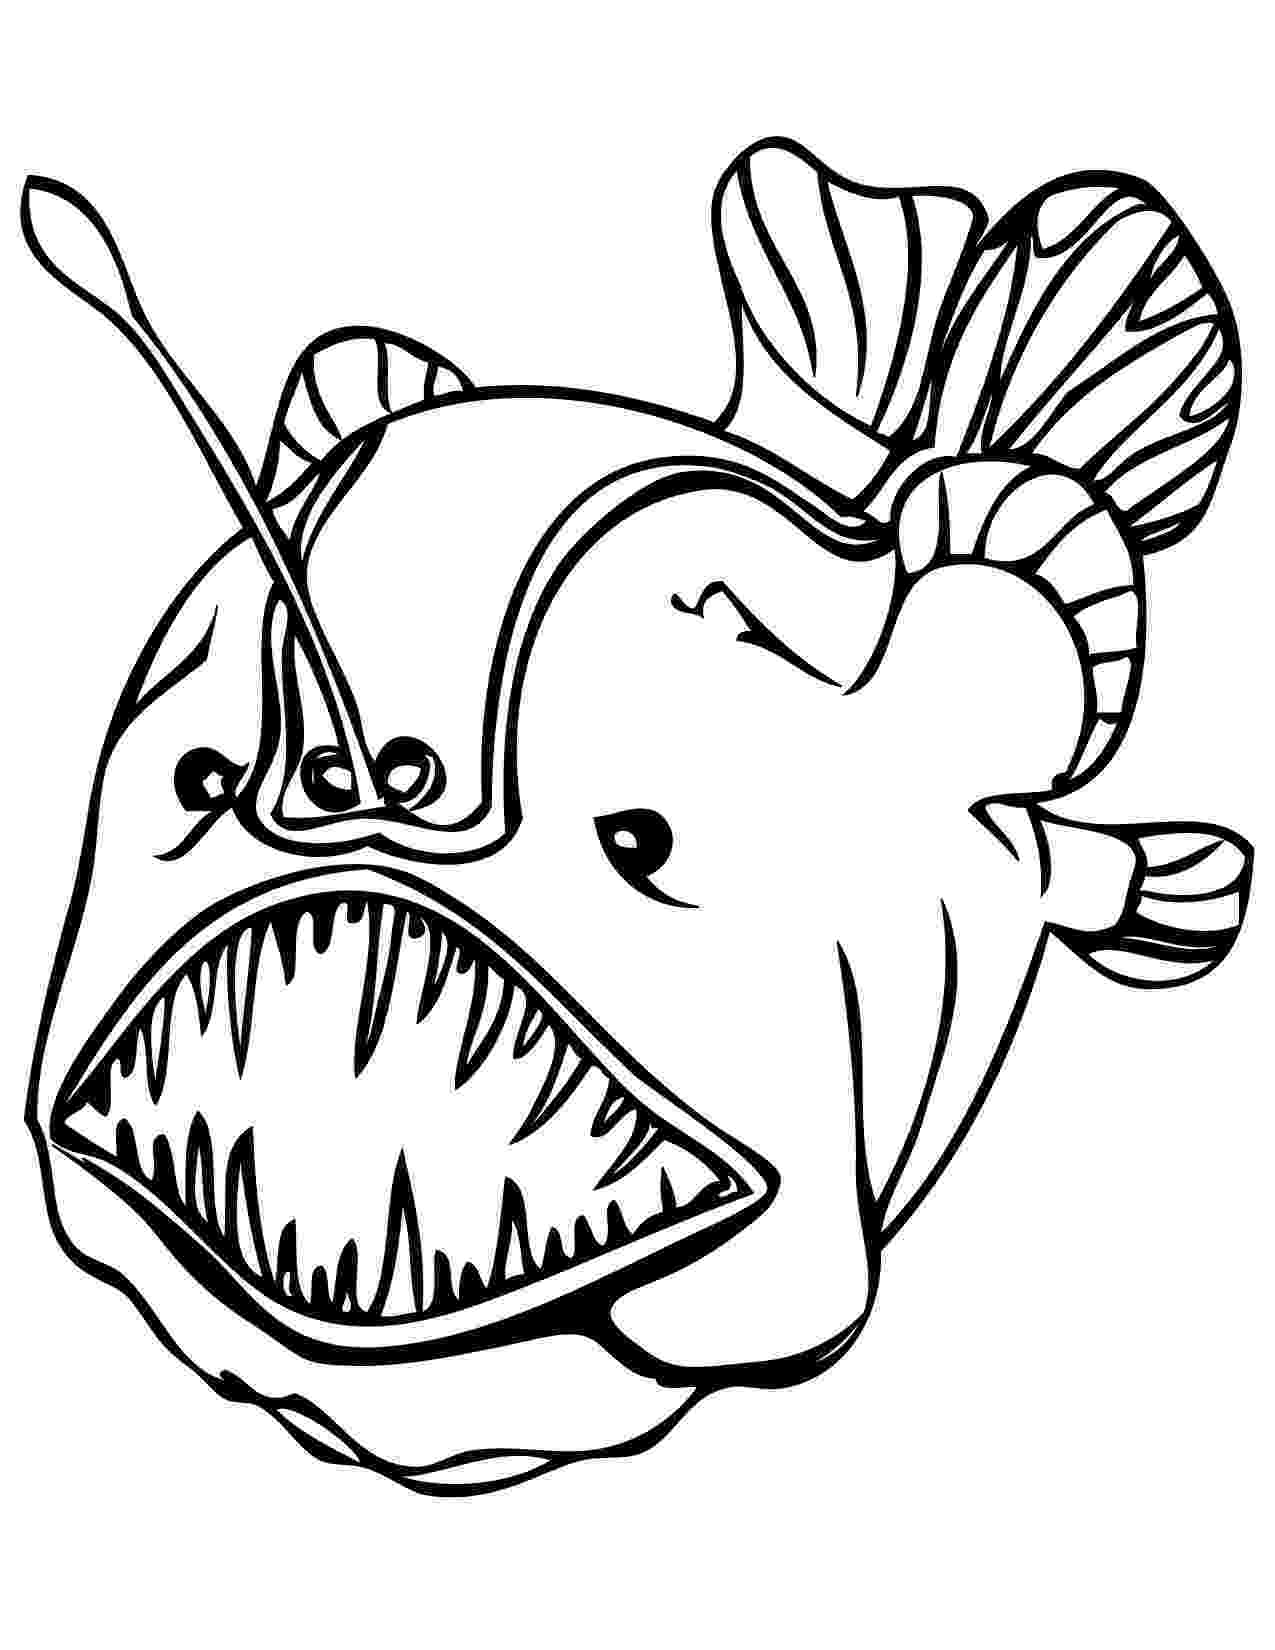 coloring picture fish sea fish coloring pages download and print for free picture fish coloring